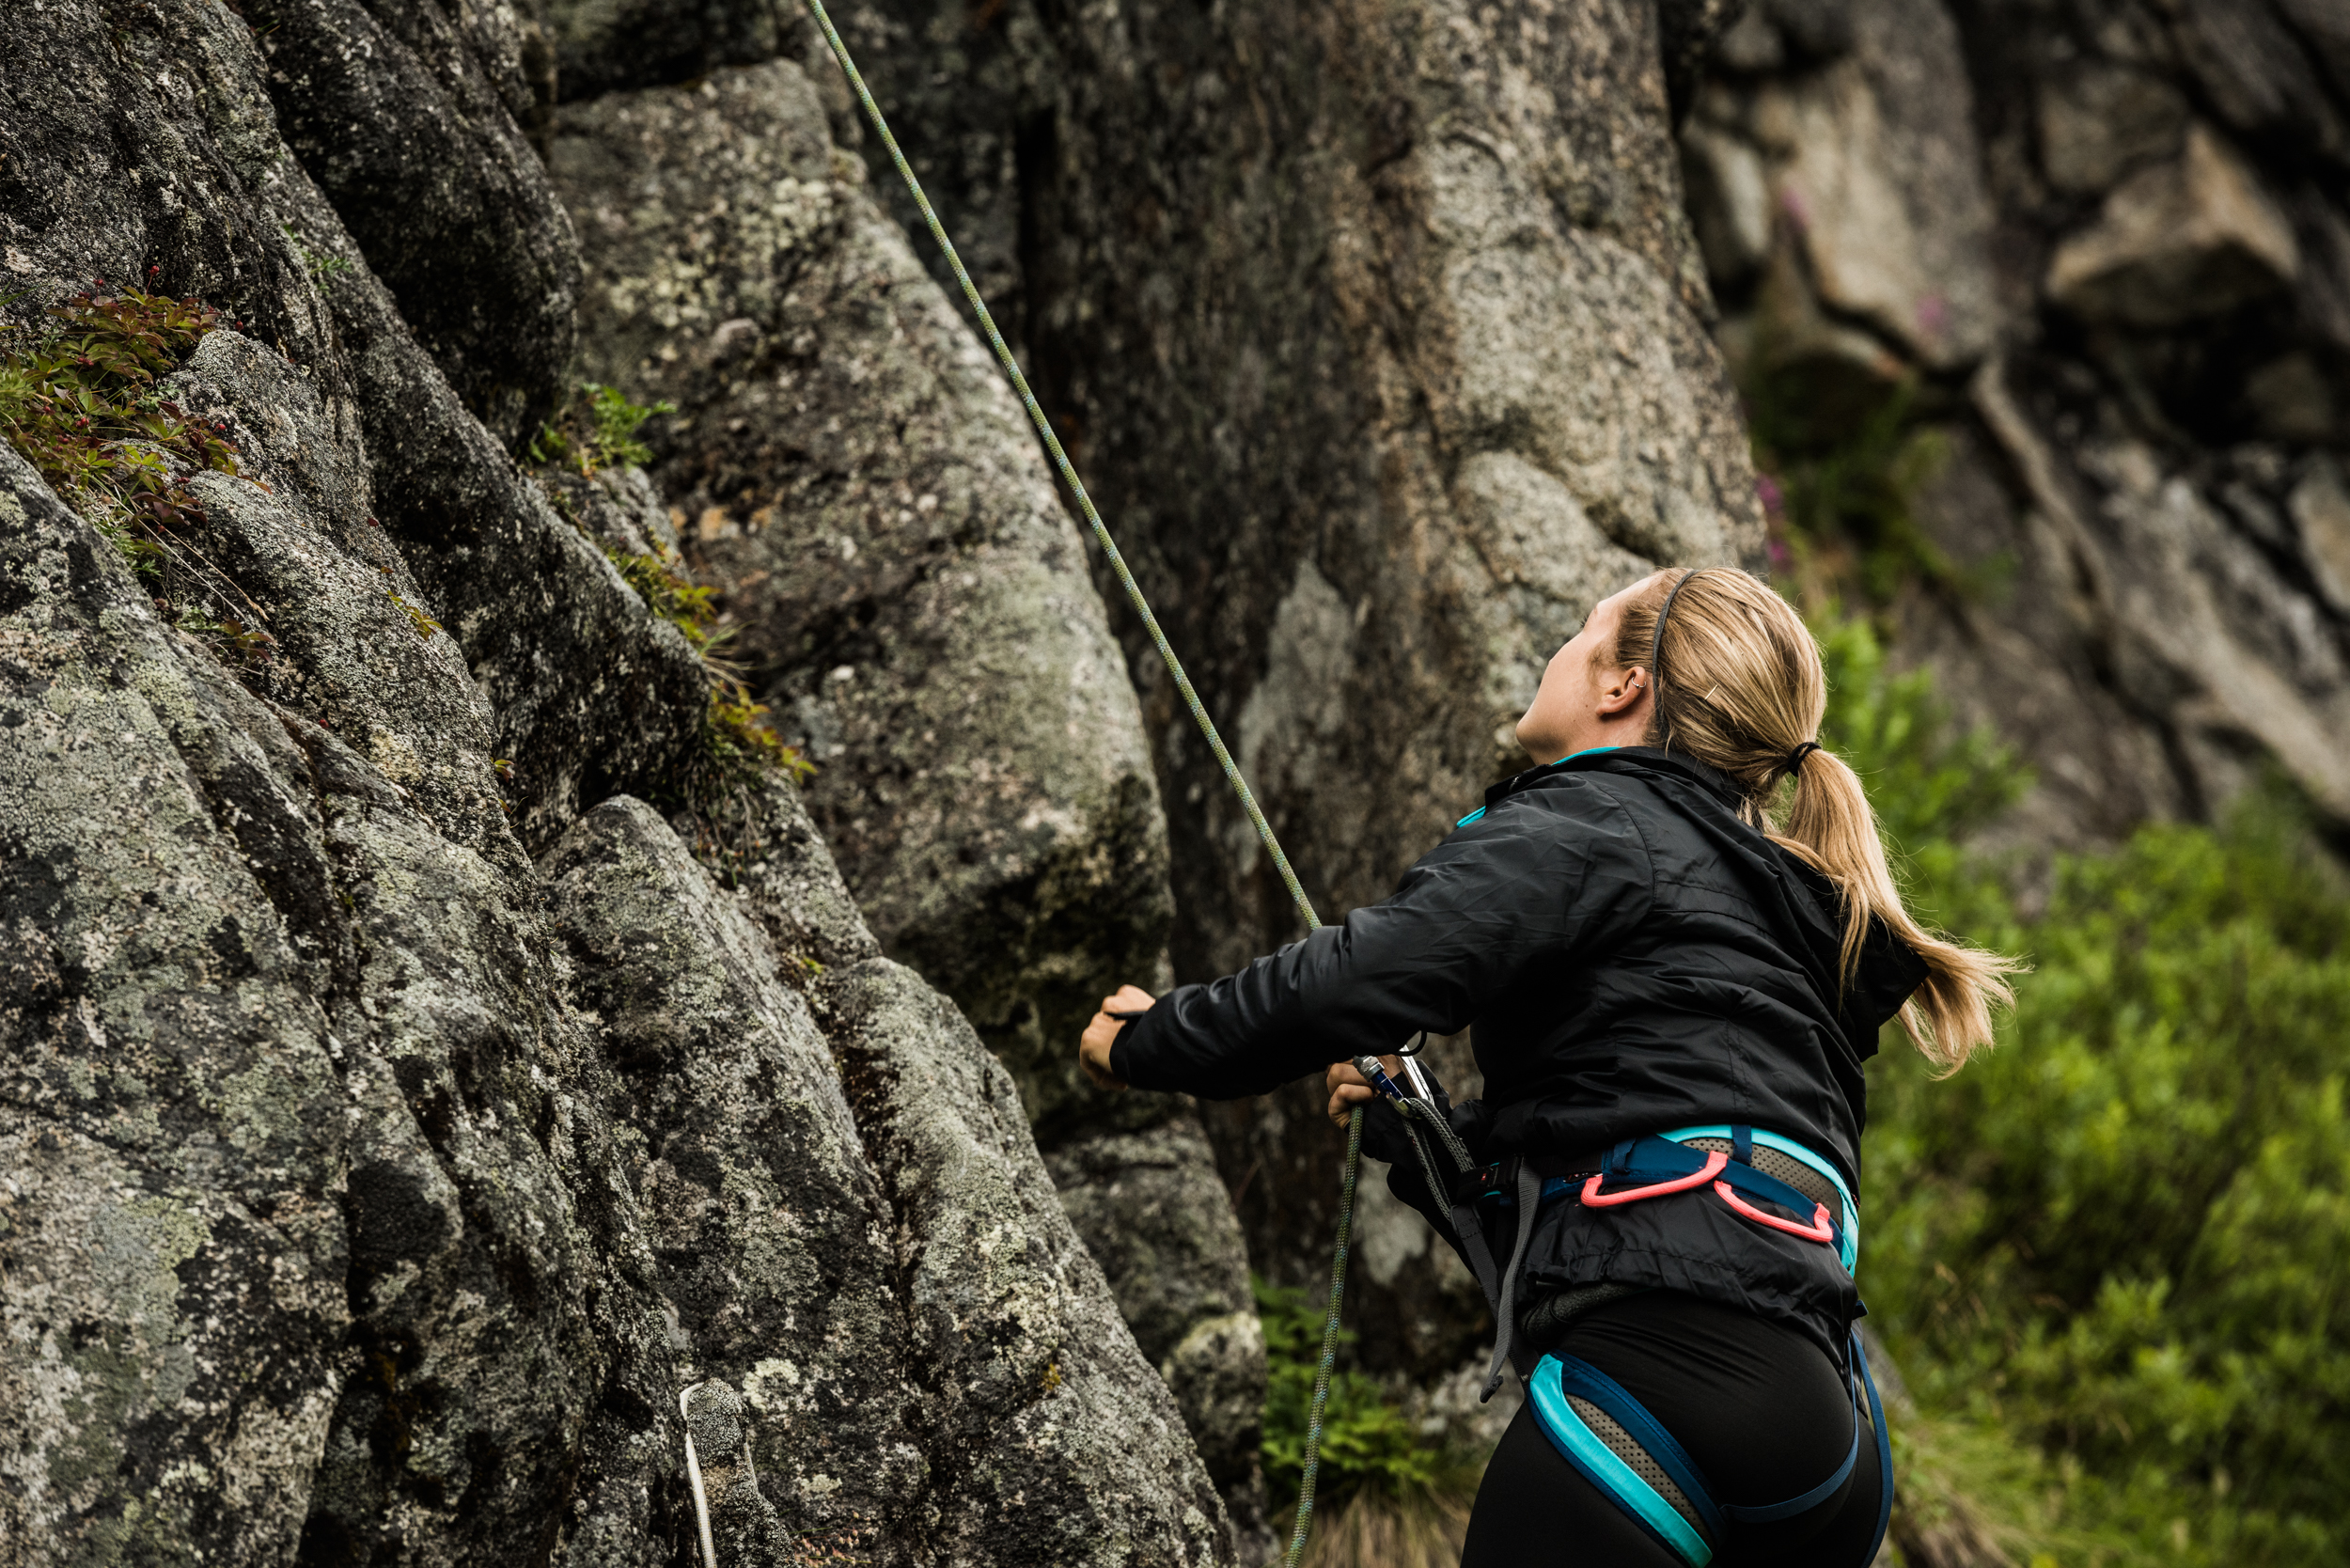 TaraShupe_Photography_Alaska_RockClimbing_HatchersPass_Travel_Photographer_Women_Adventure_022.jpg